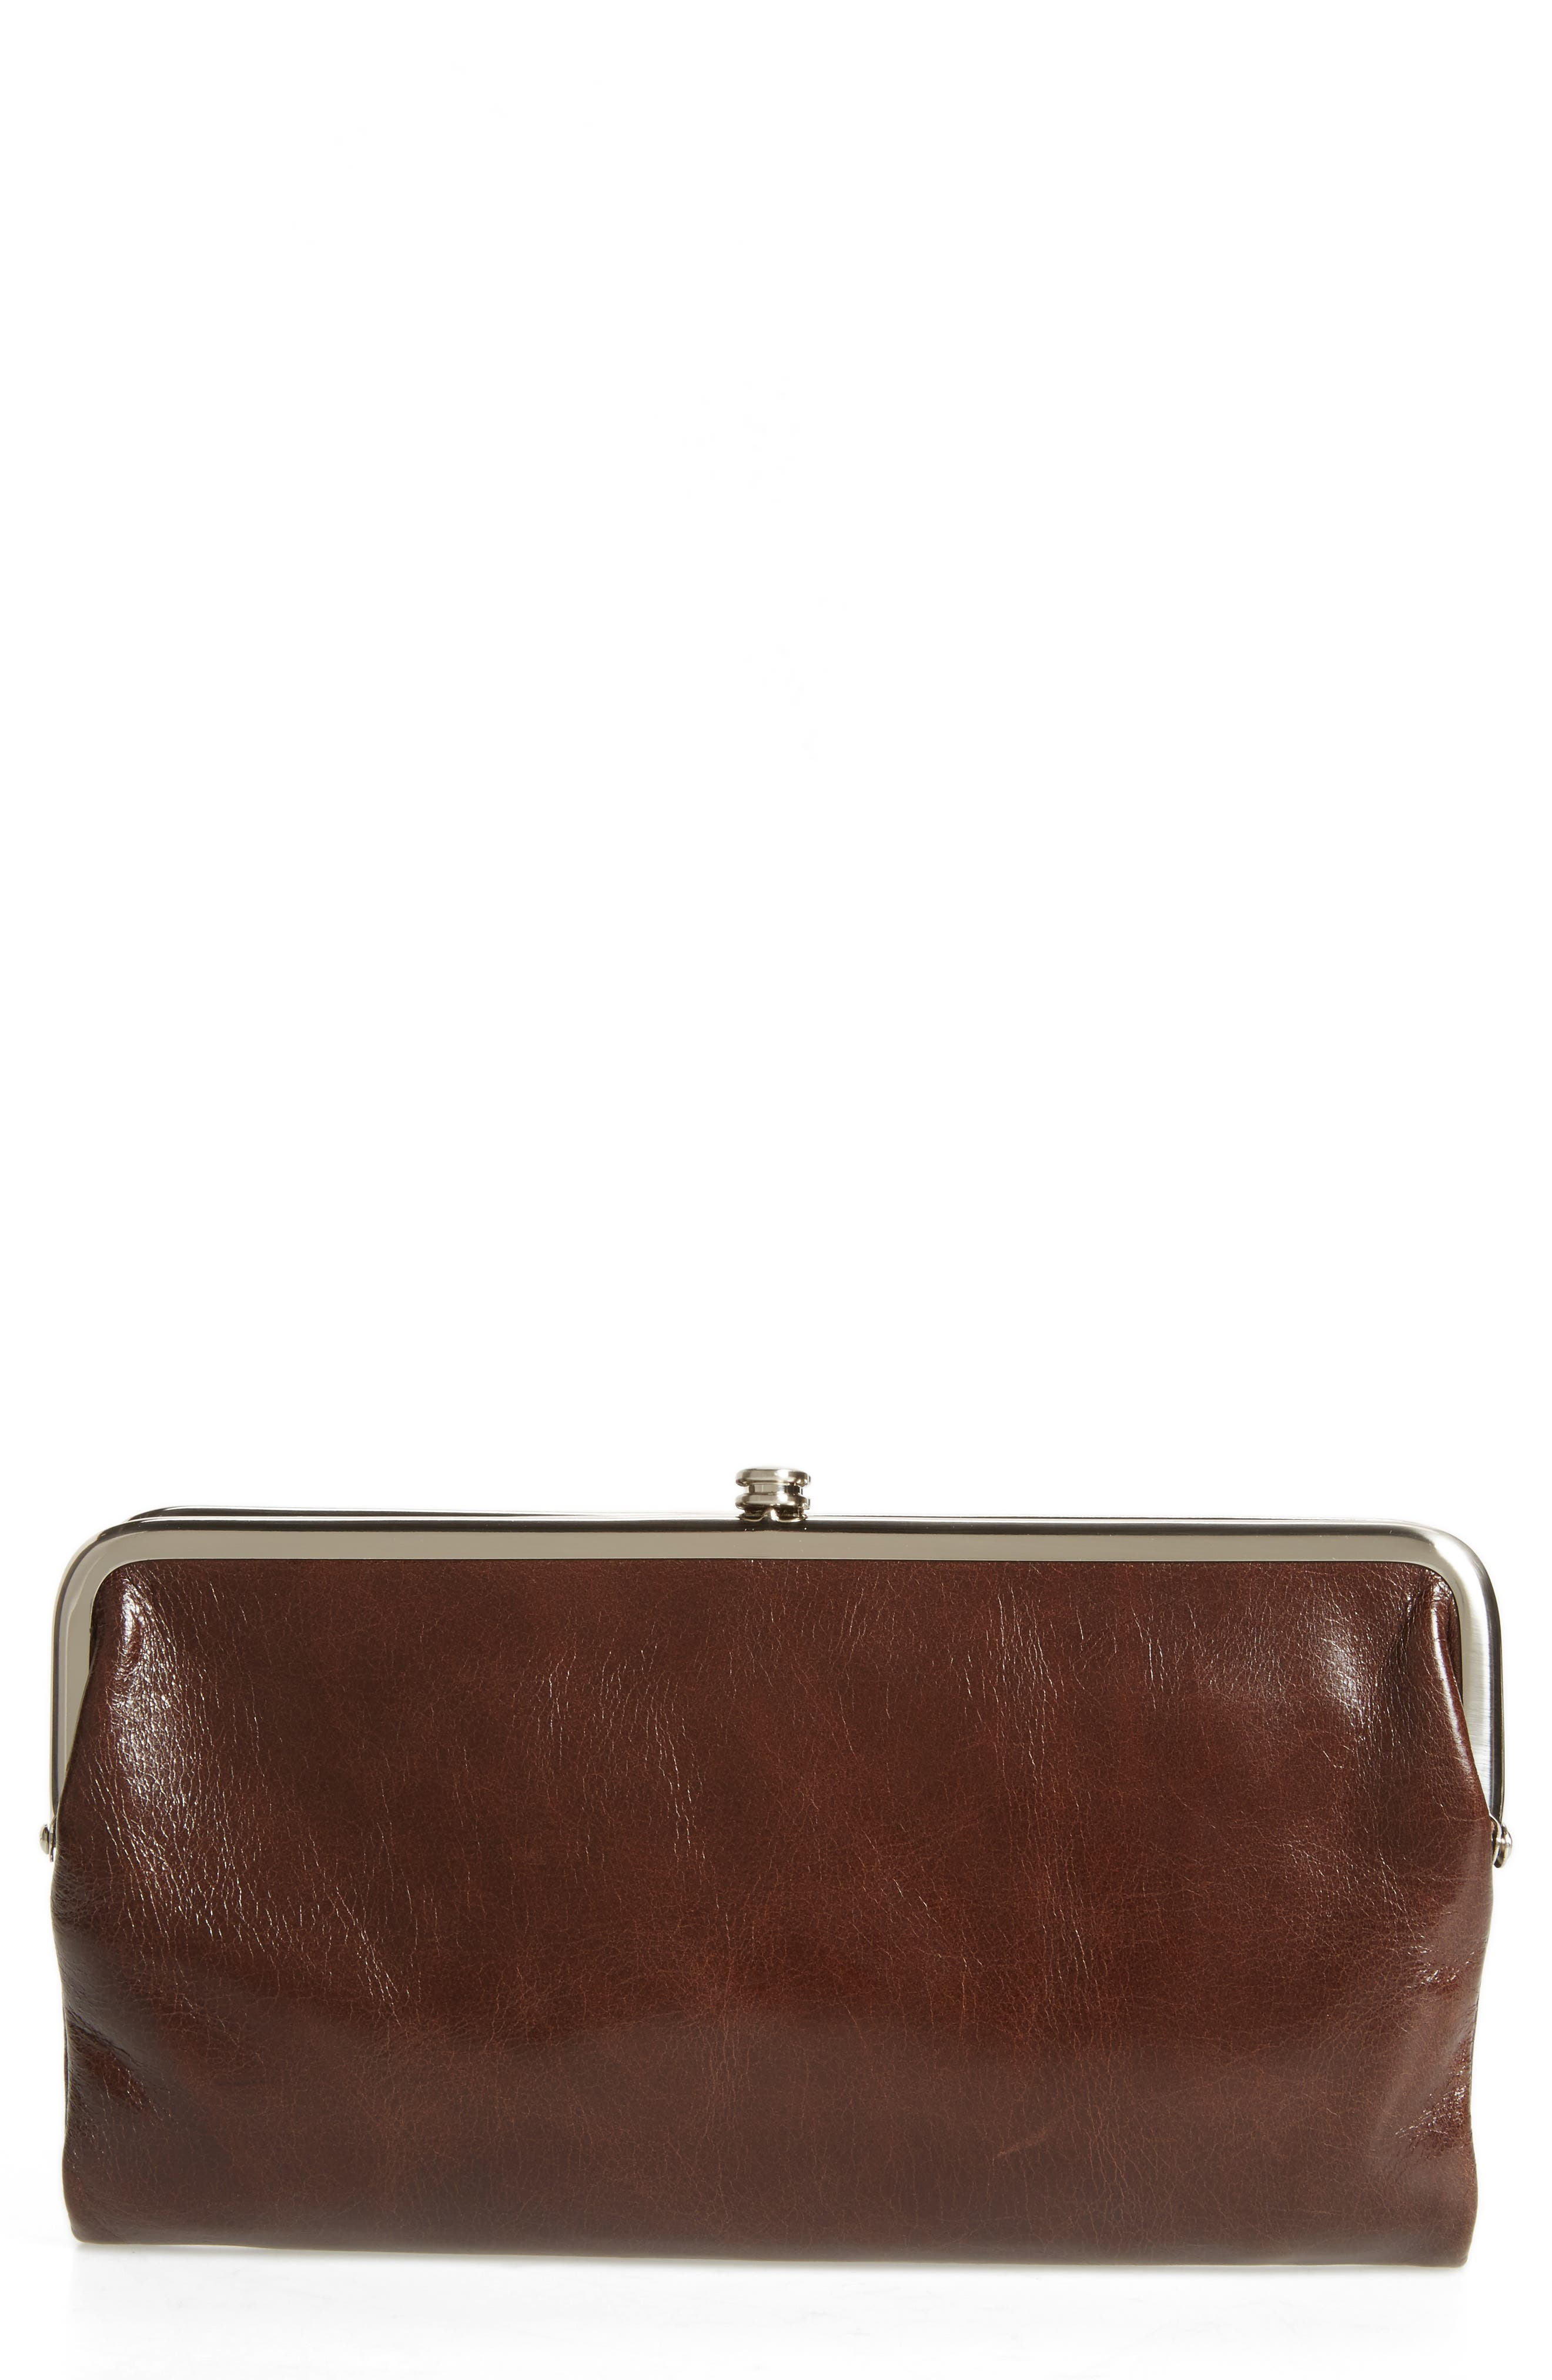 Hobo 'Lauren' Leather Double Frame Clutch